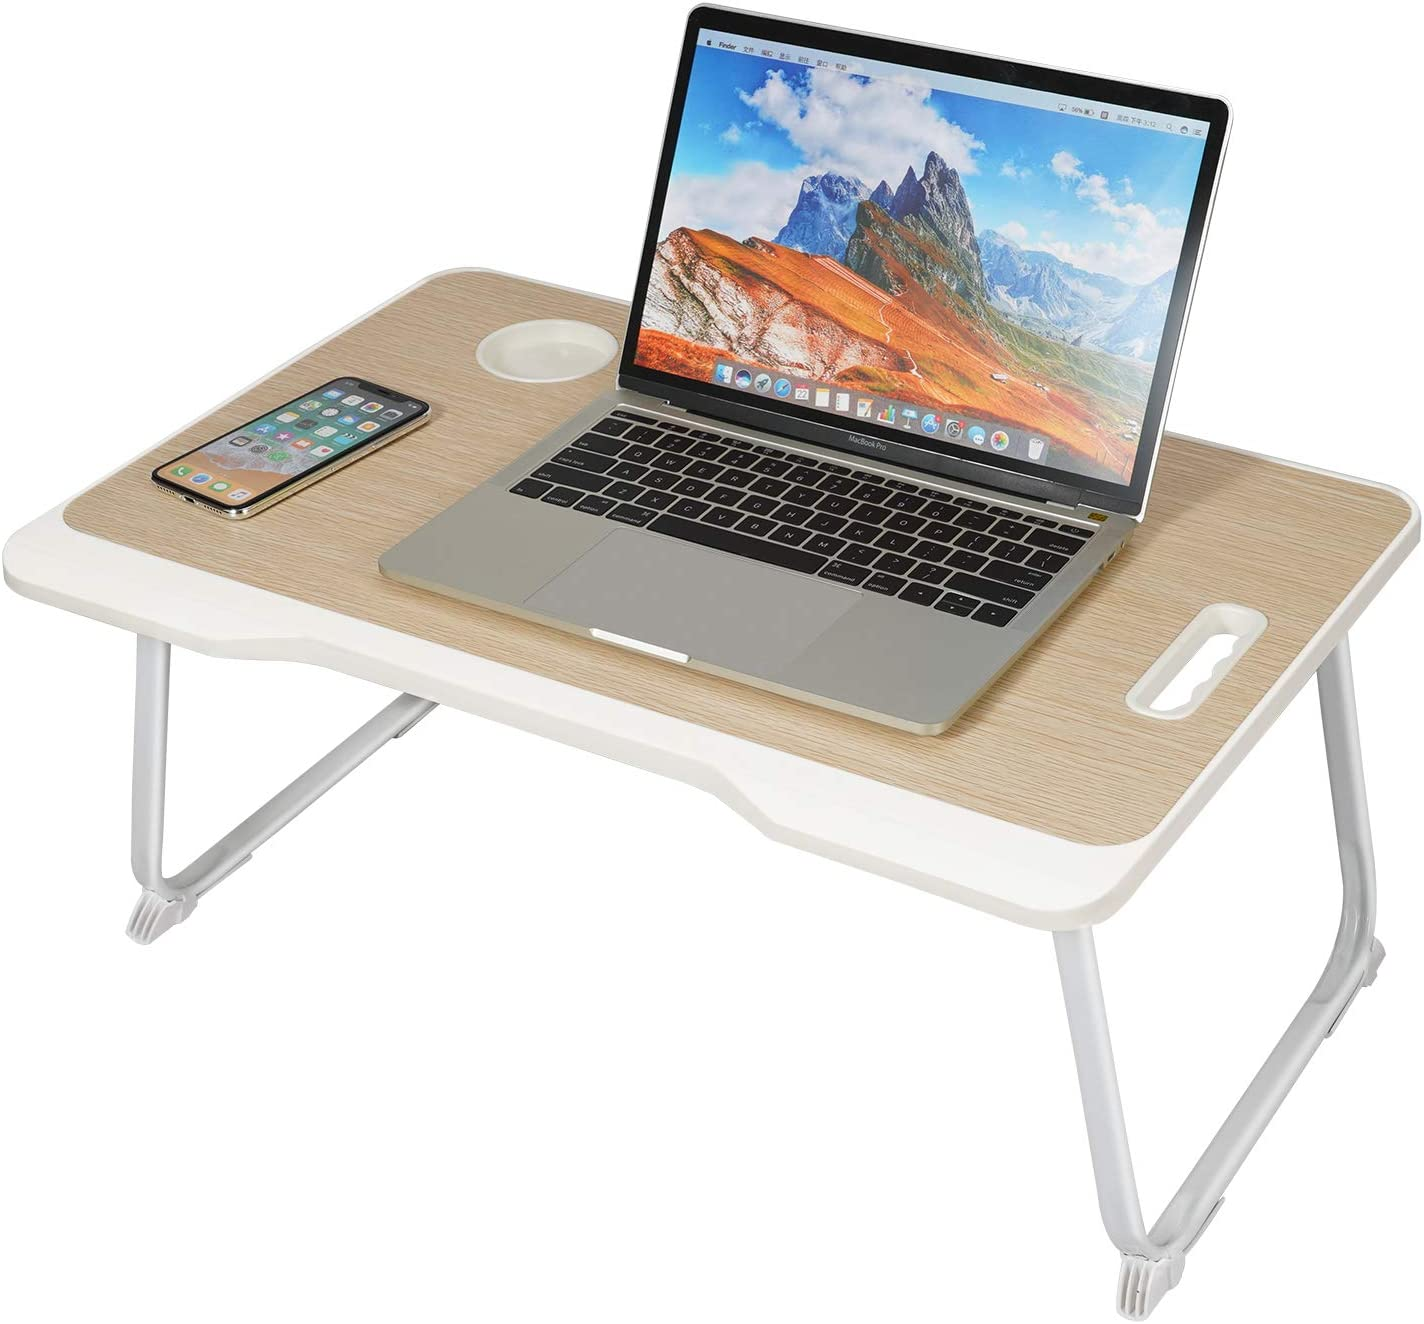 Laptop Bed Tray Table with Handle,Portable Lap Desk,Notebook Stand Reading Holder with Foldable Legs&Cup Slot&Tablet Groove for Eating Breakfast,Reading,Watching Movie on Bed/Sofa(60 x 42cm) (white)